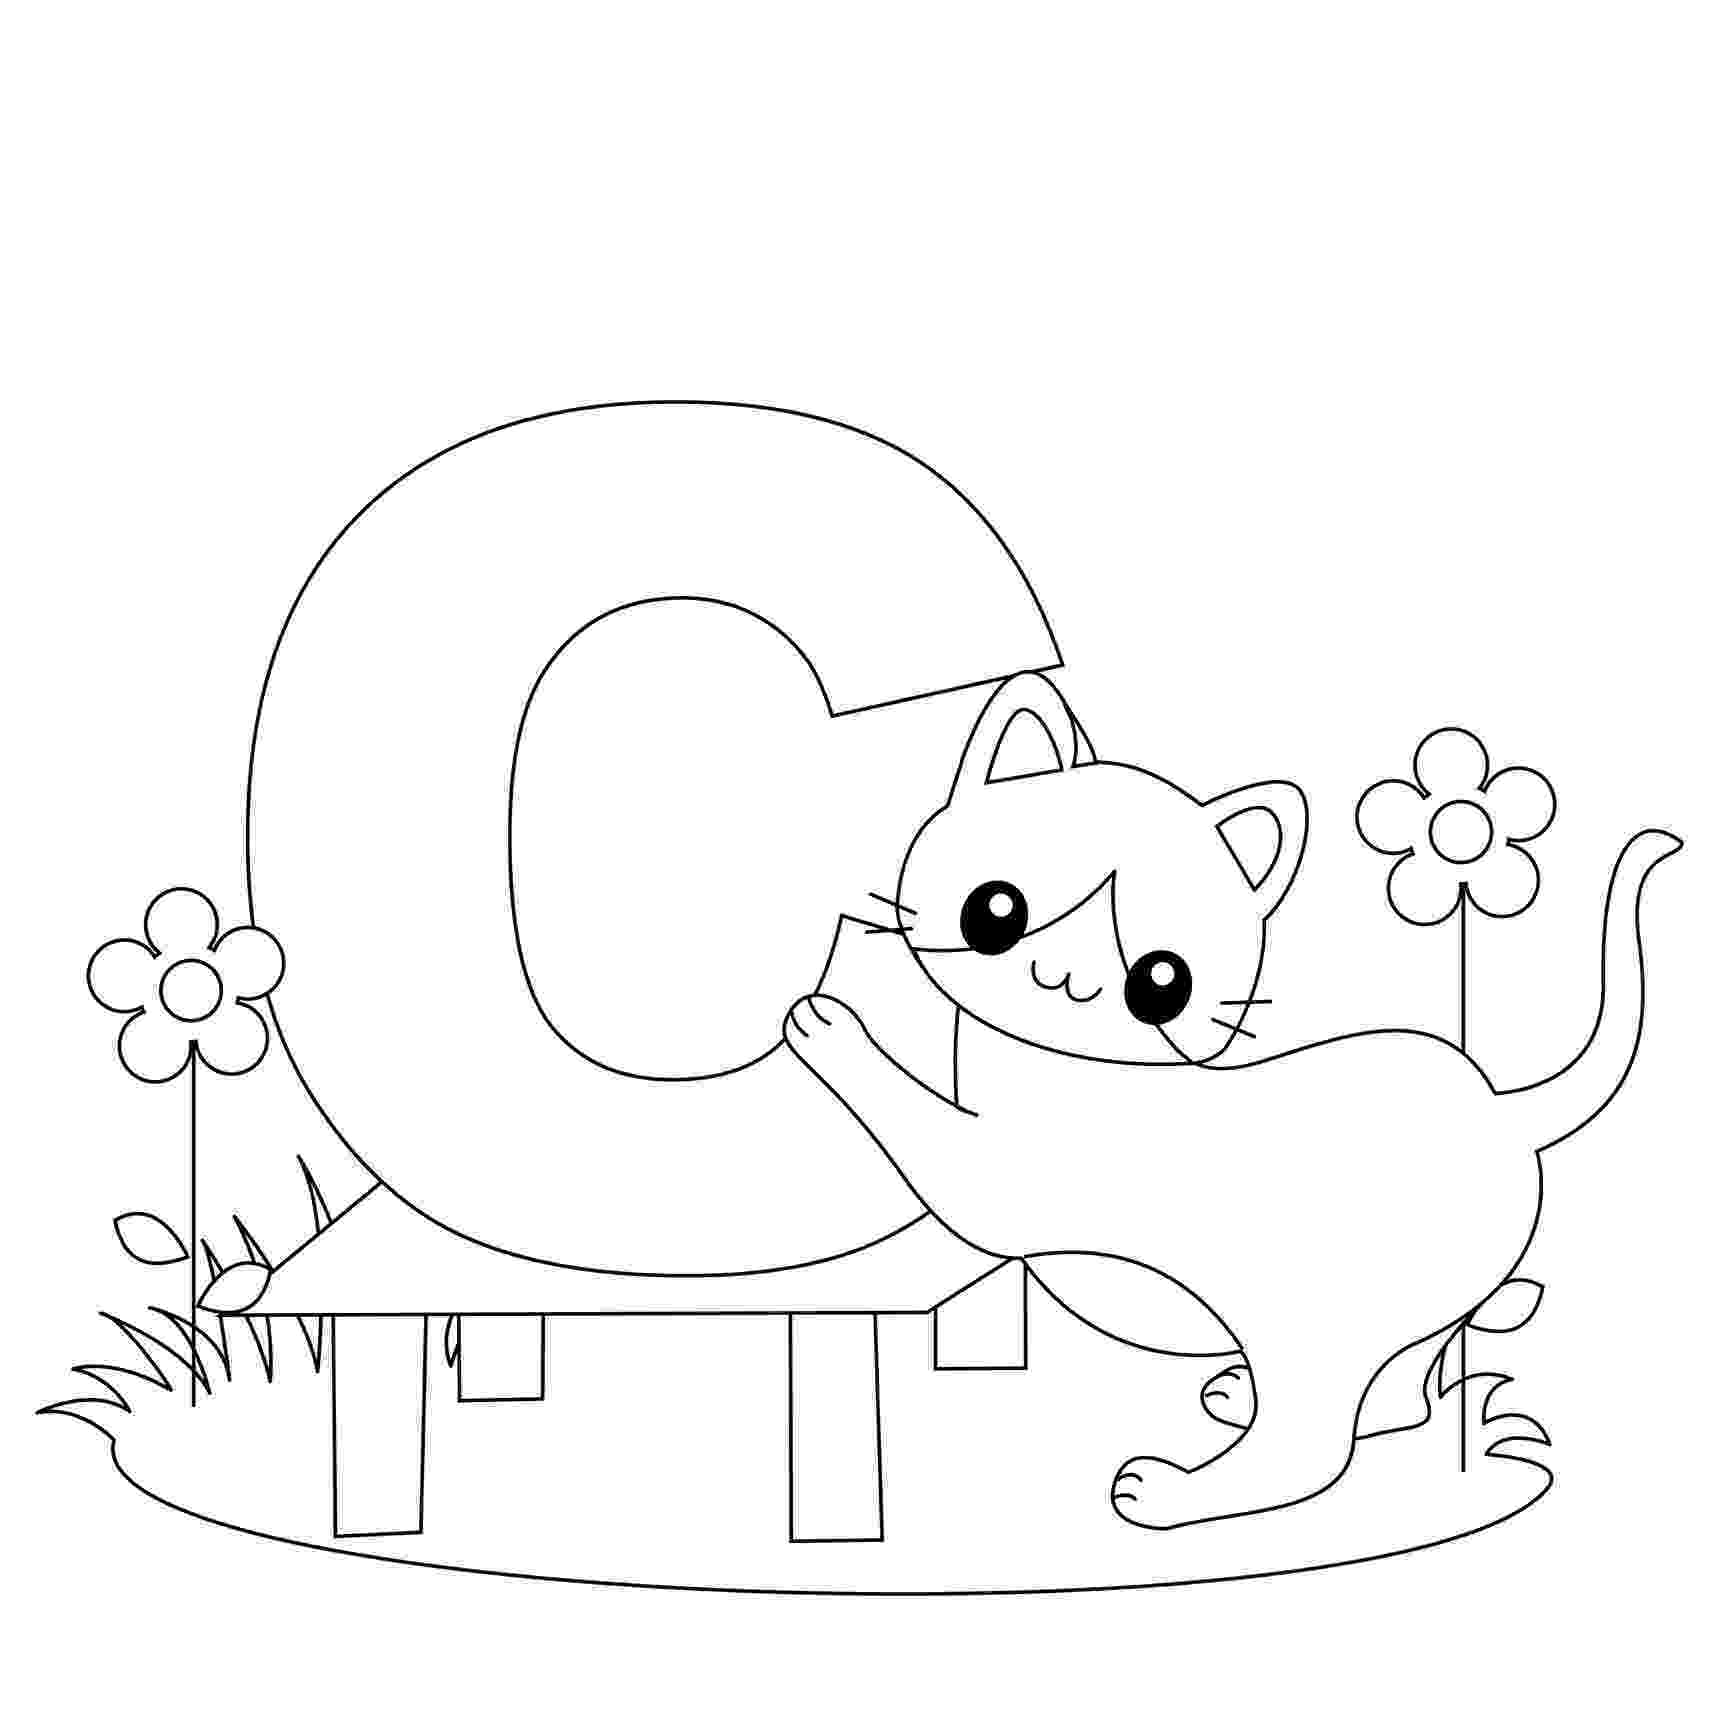 childrens colouring pages alphabet free printable alphabet coloring pages for kids best pages colouring childrens alphabet